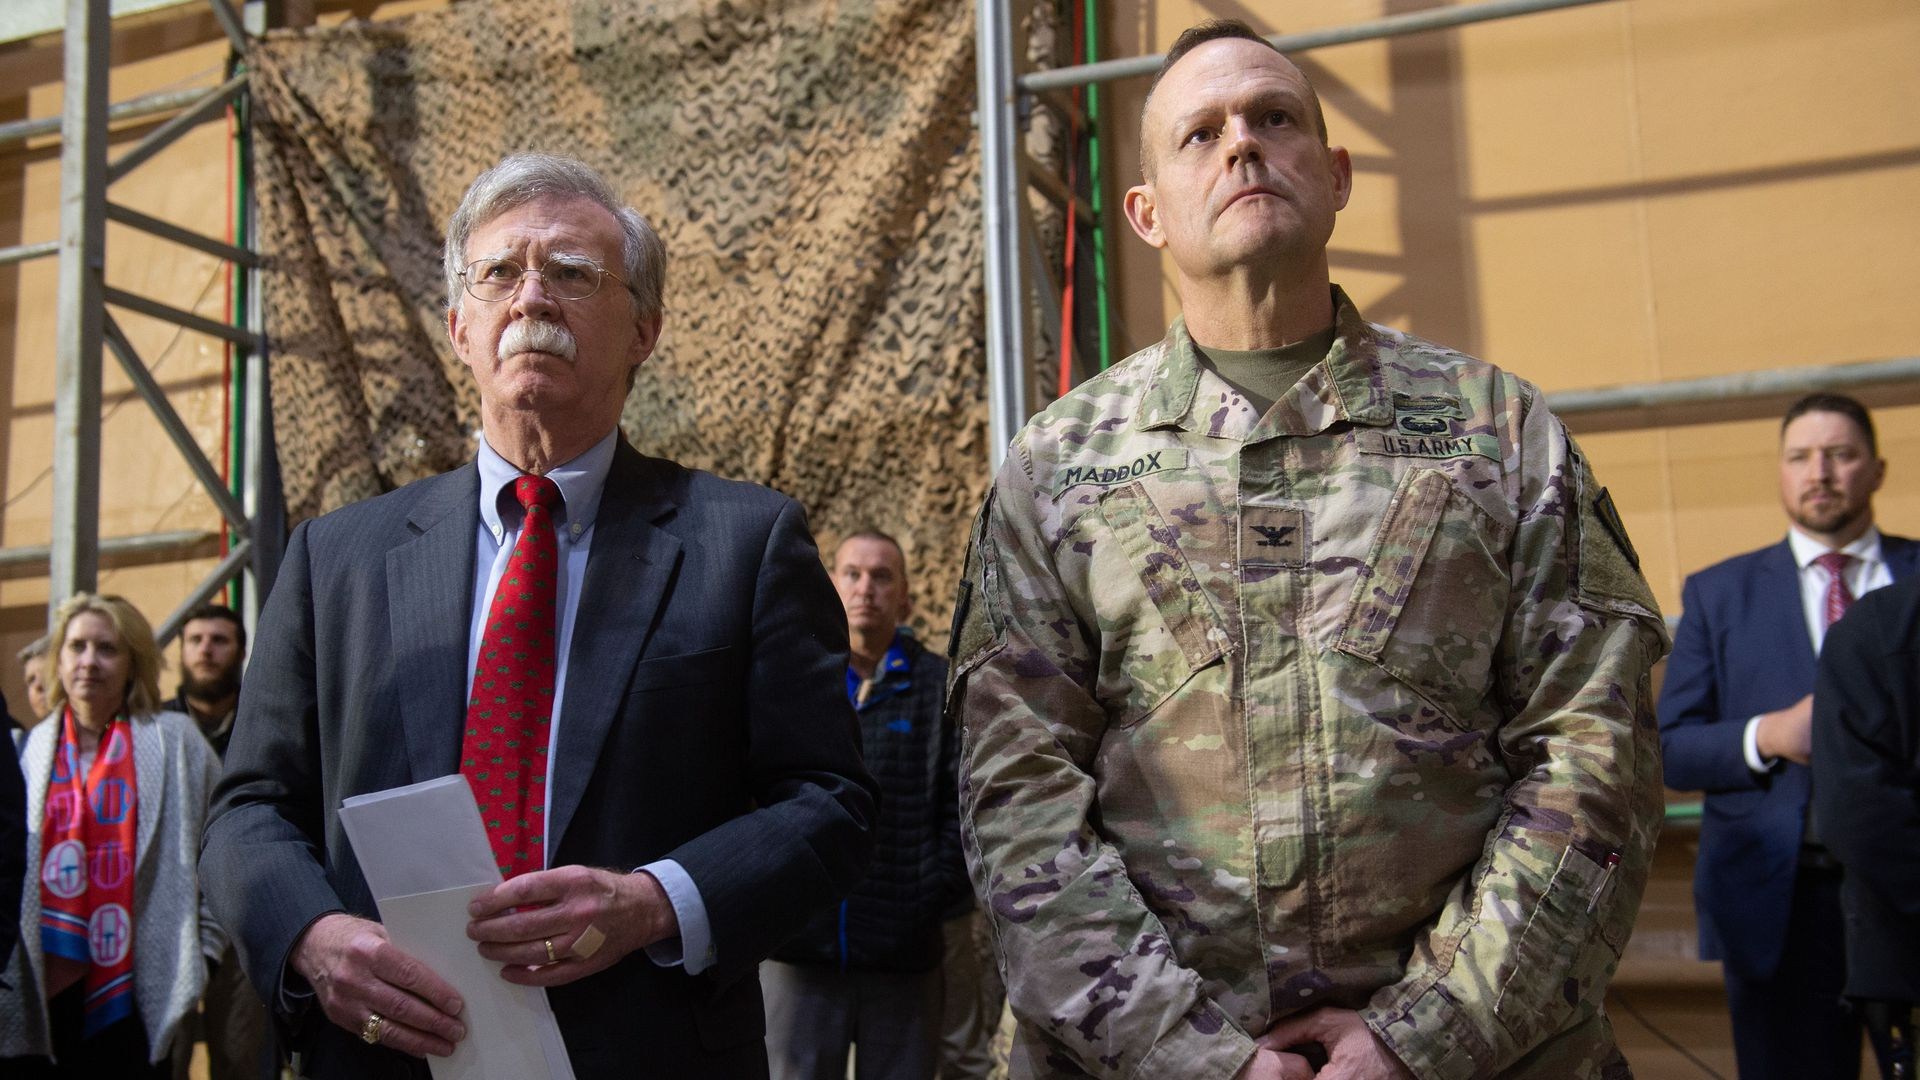 US National Security Adviser John Bolton listens as US President Donald Trump speaks to members of the US military during an unannounced trip to Al Asad Air Base in Iraq